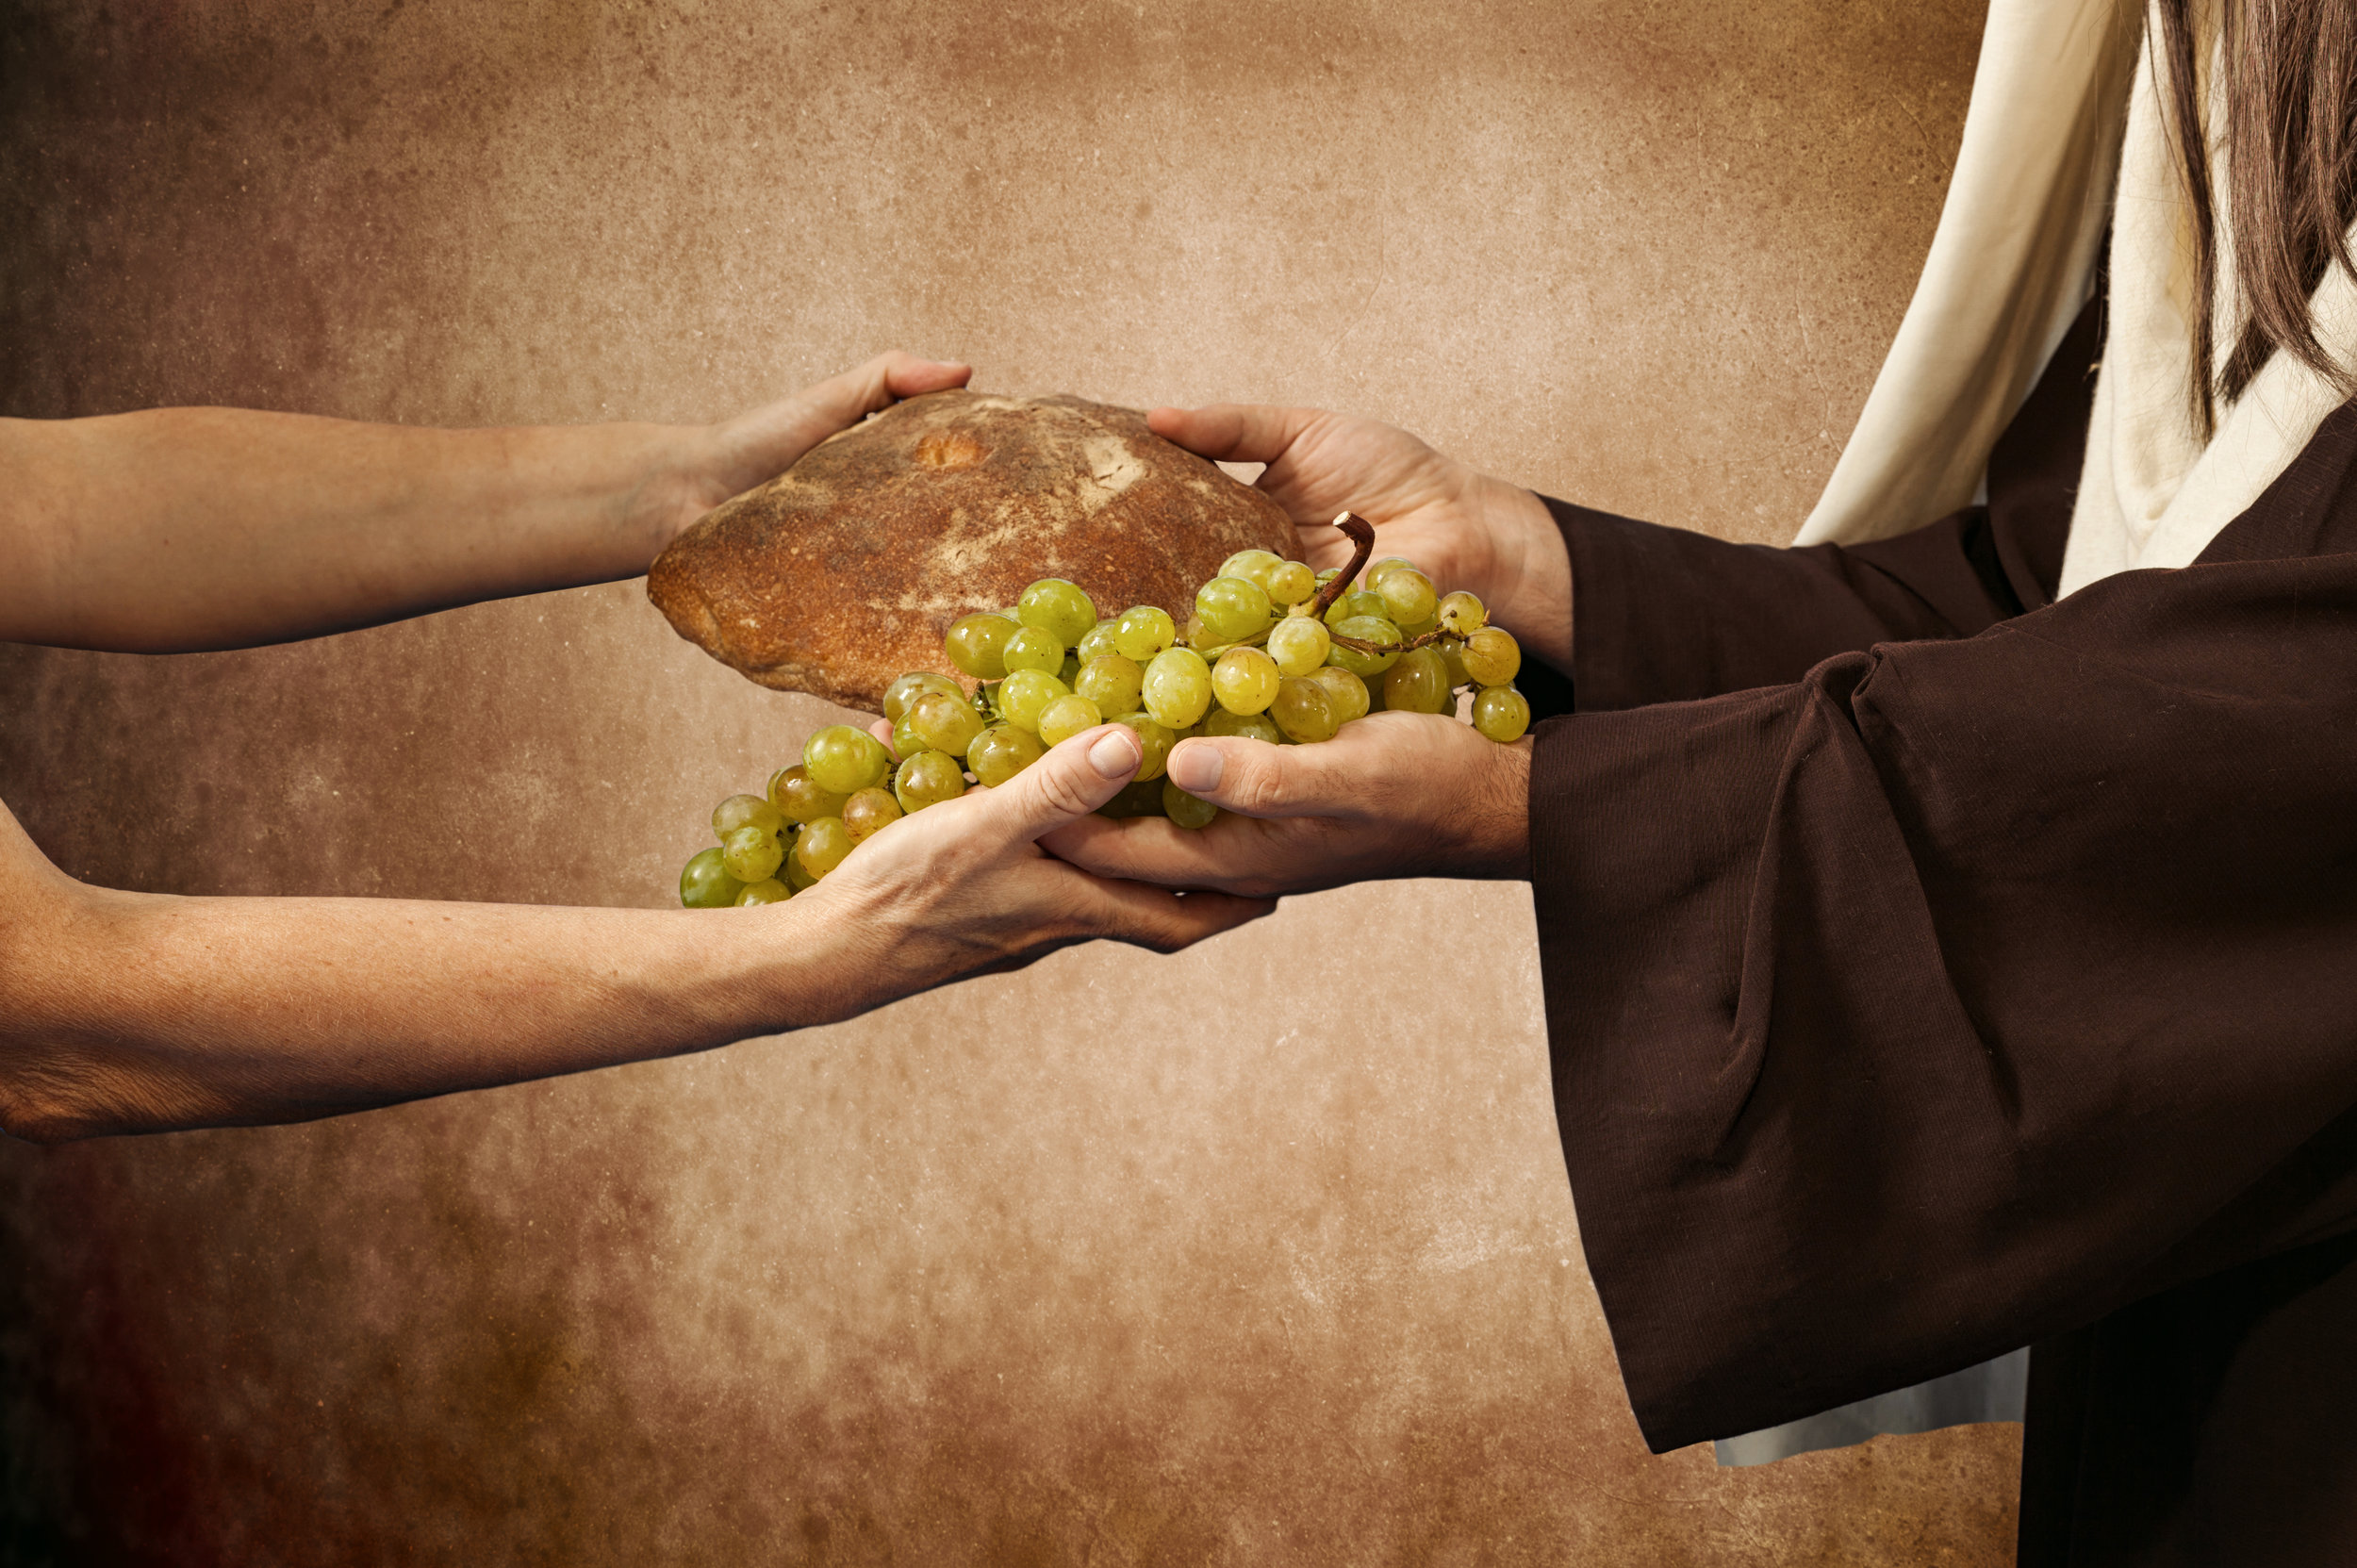 easter-jesus-gives-bread-and-grapes.jpg